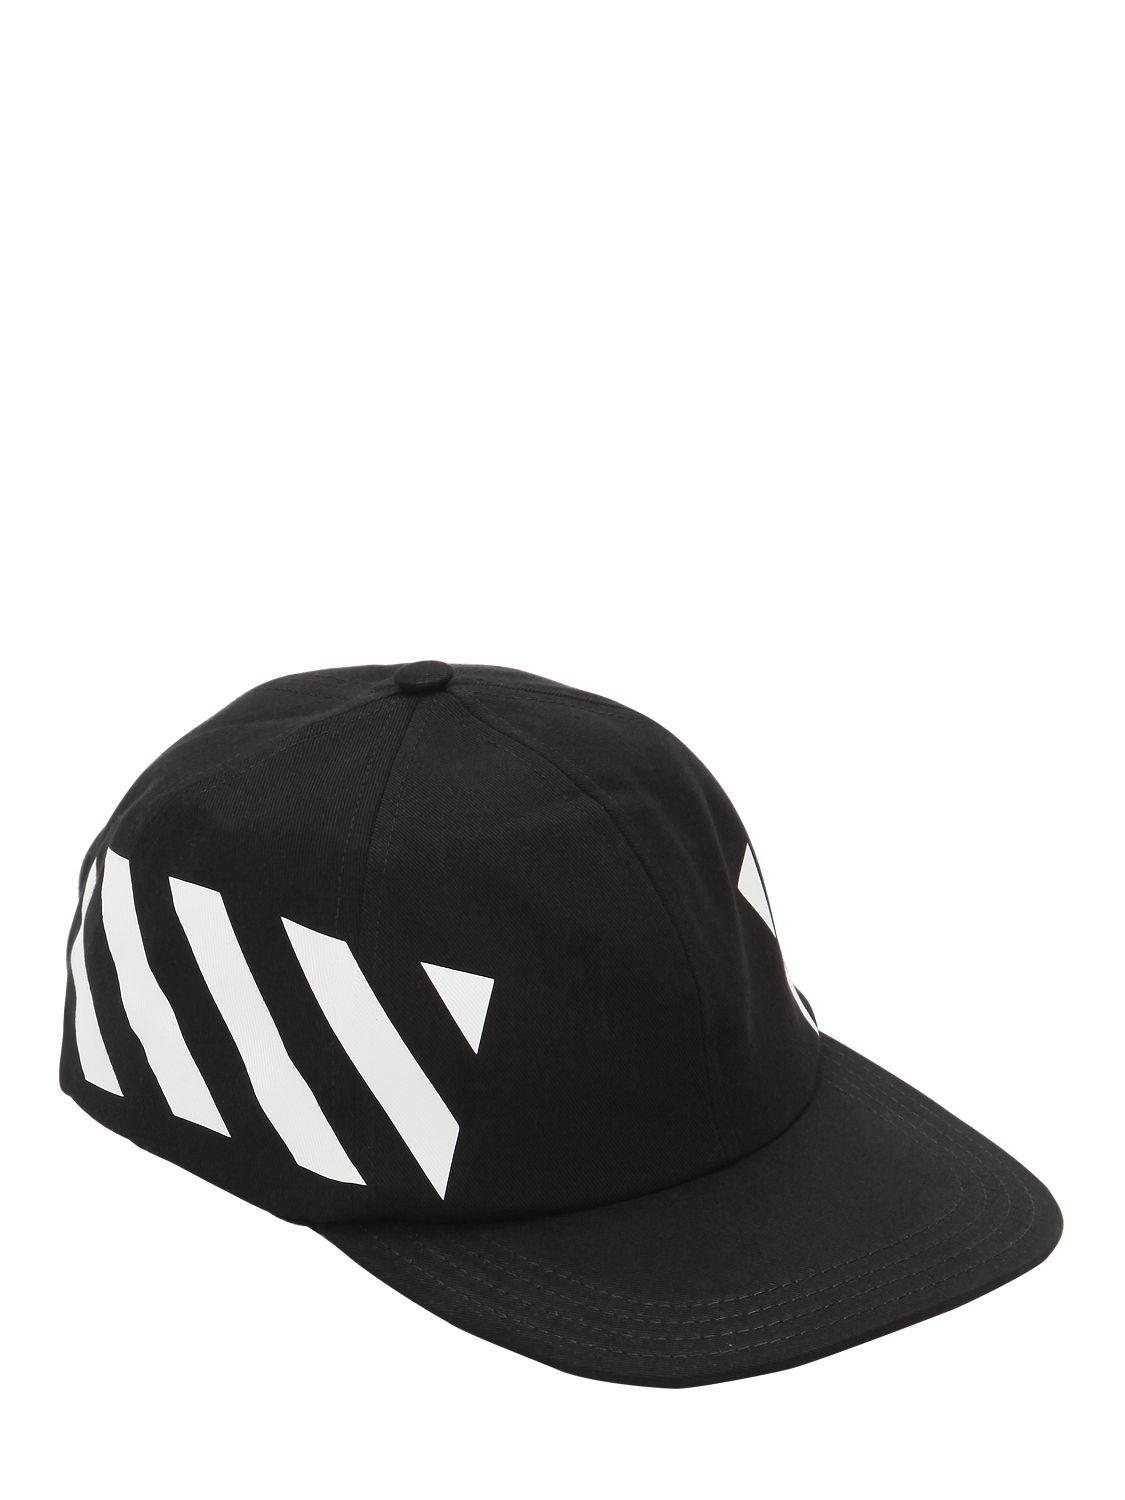 dabb41d3ad1 Off-White c o Virgil Abloh - Black Printed Cotton Canvas Baseball Hat for.  View fullscreen